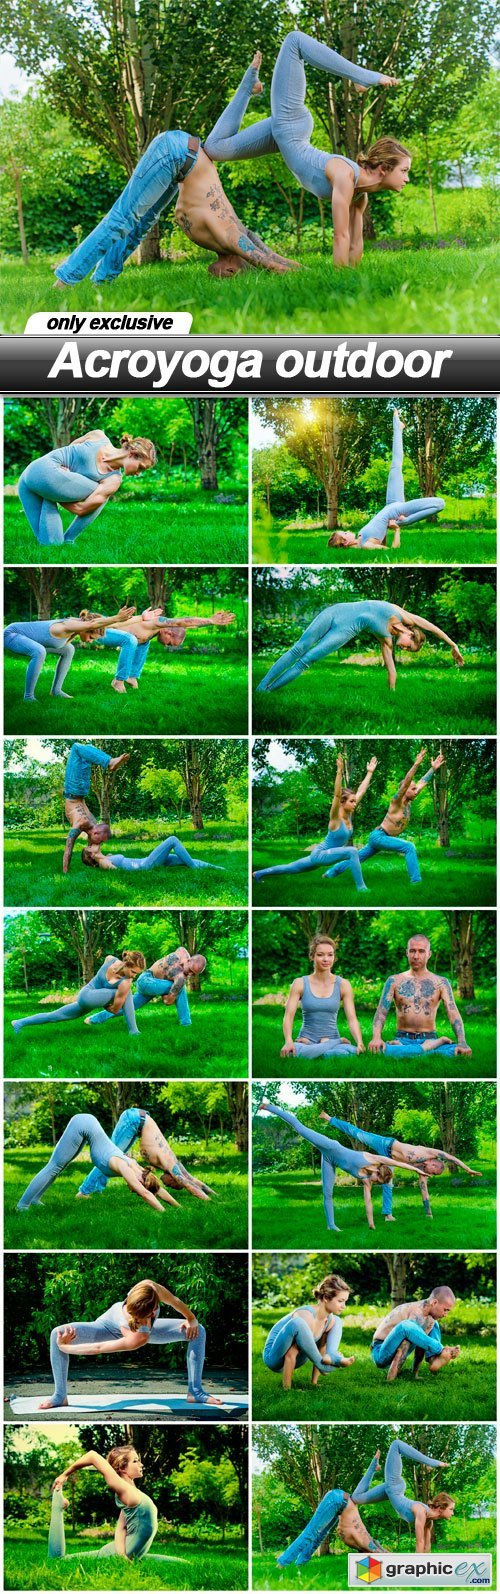 Acroyoga outdoor - 14 UHQ JPEG